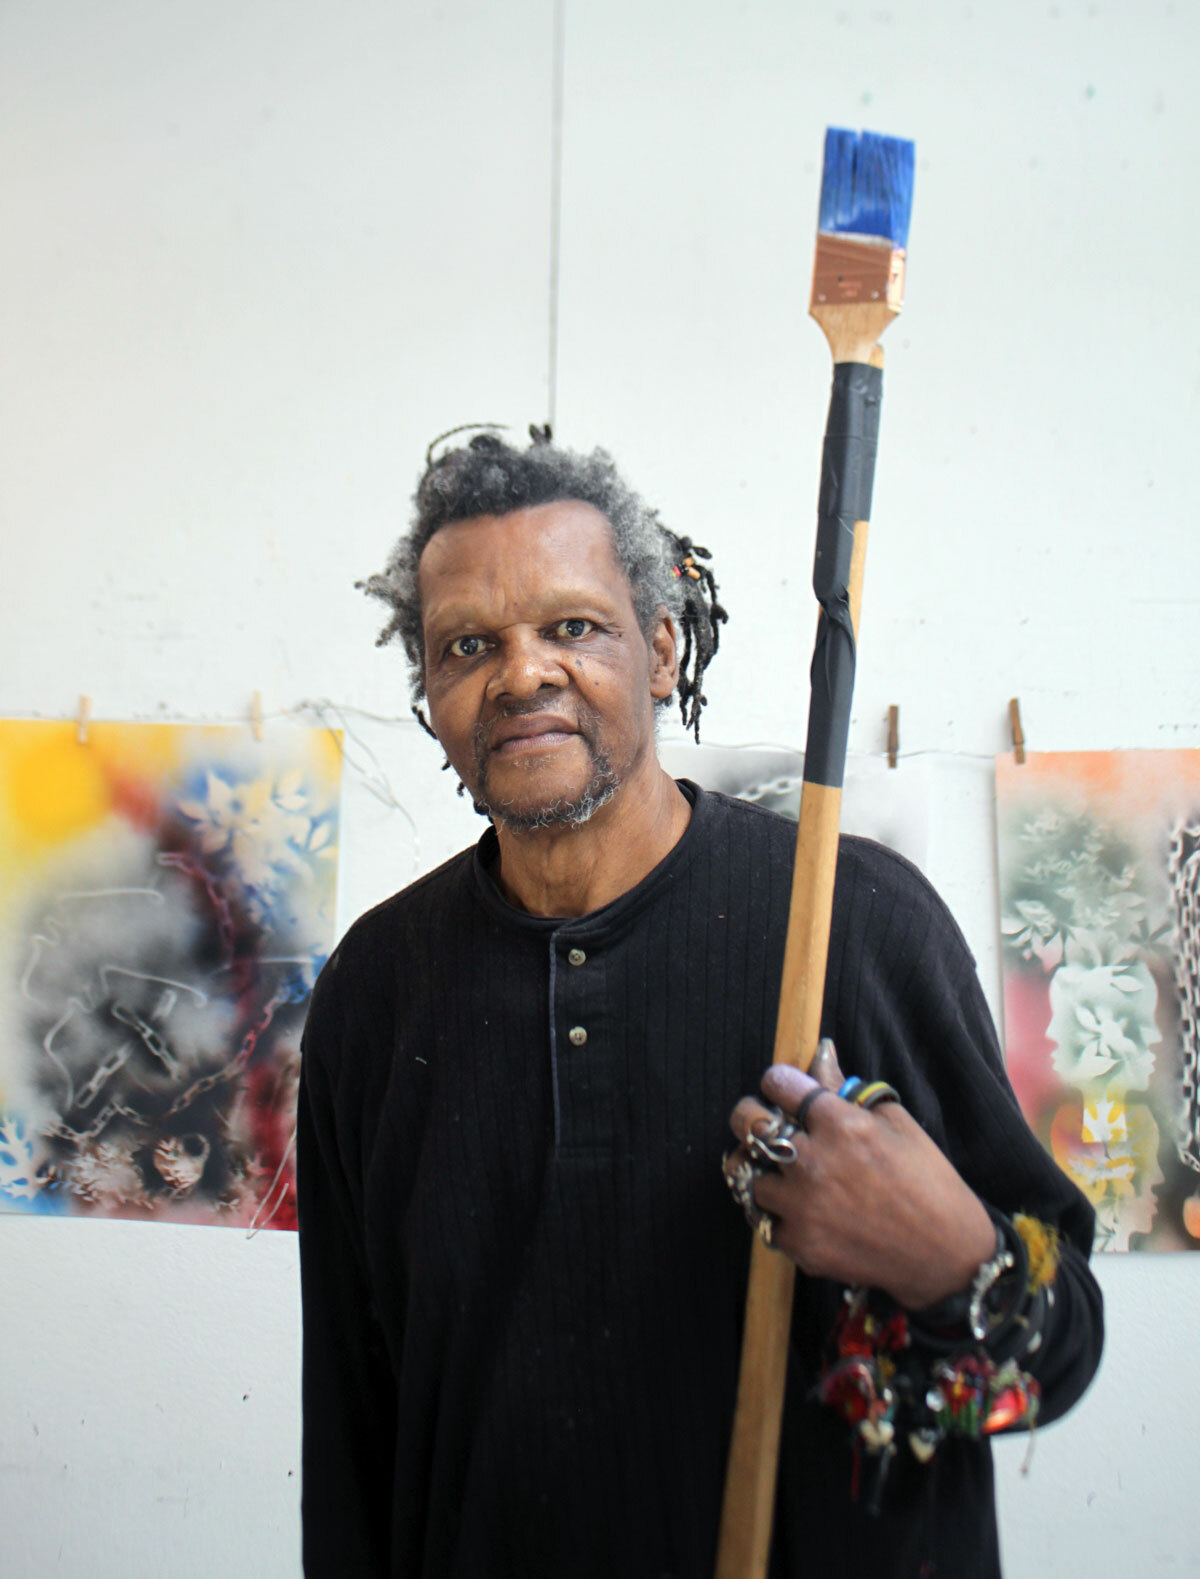 Lonnie Holley during his recent residency and performance at the Elaine de Kooning House in East Hampton.